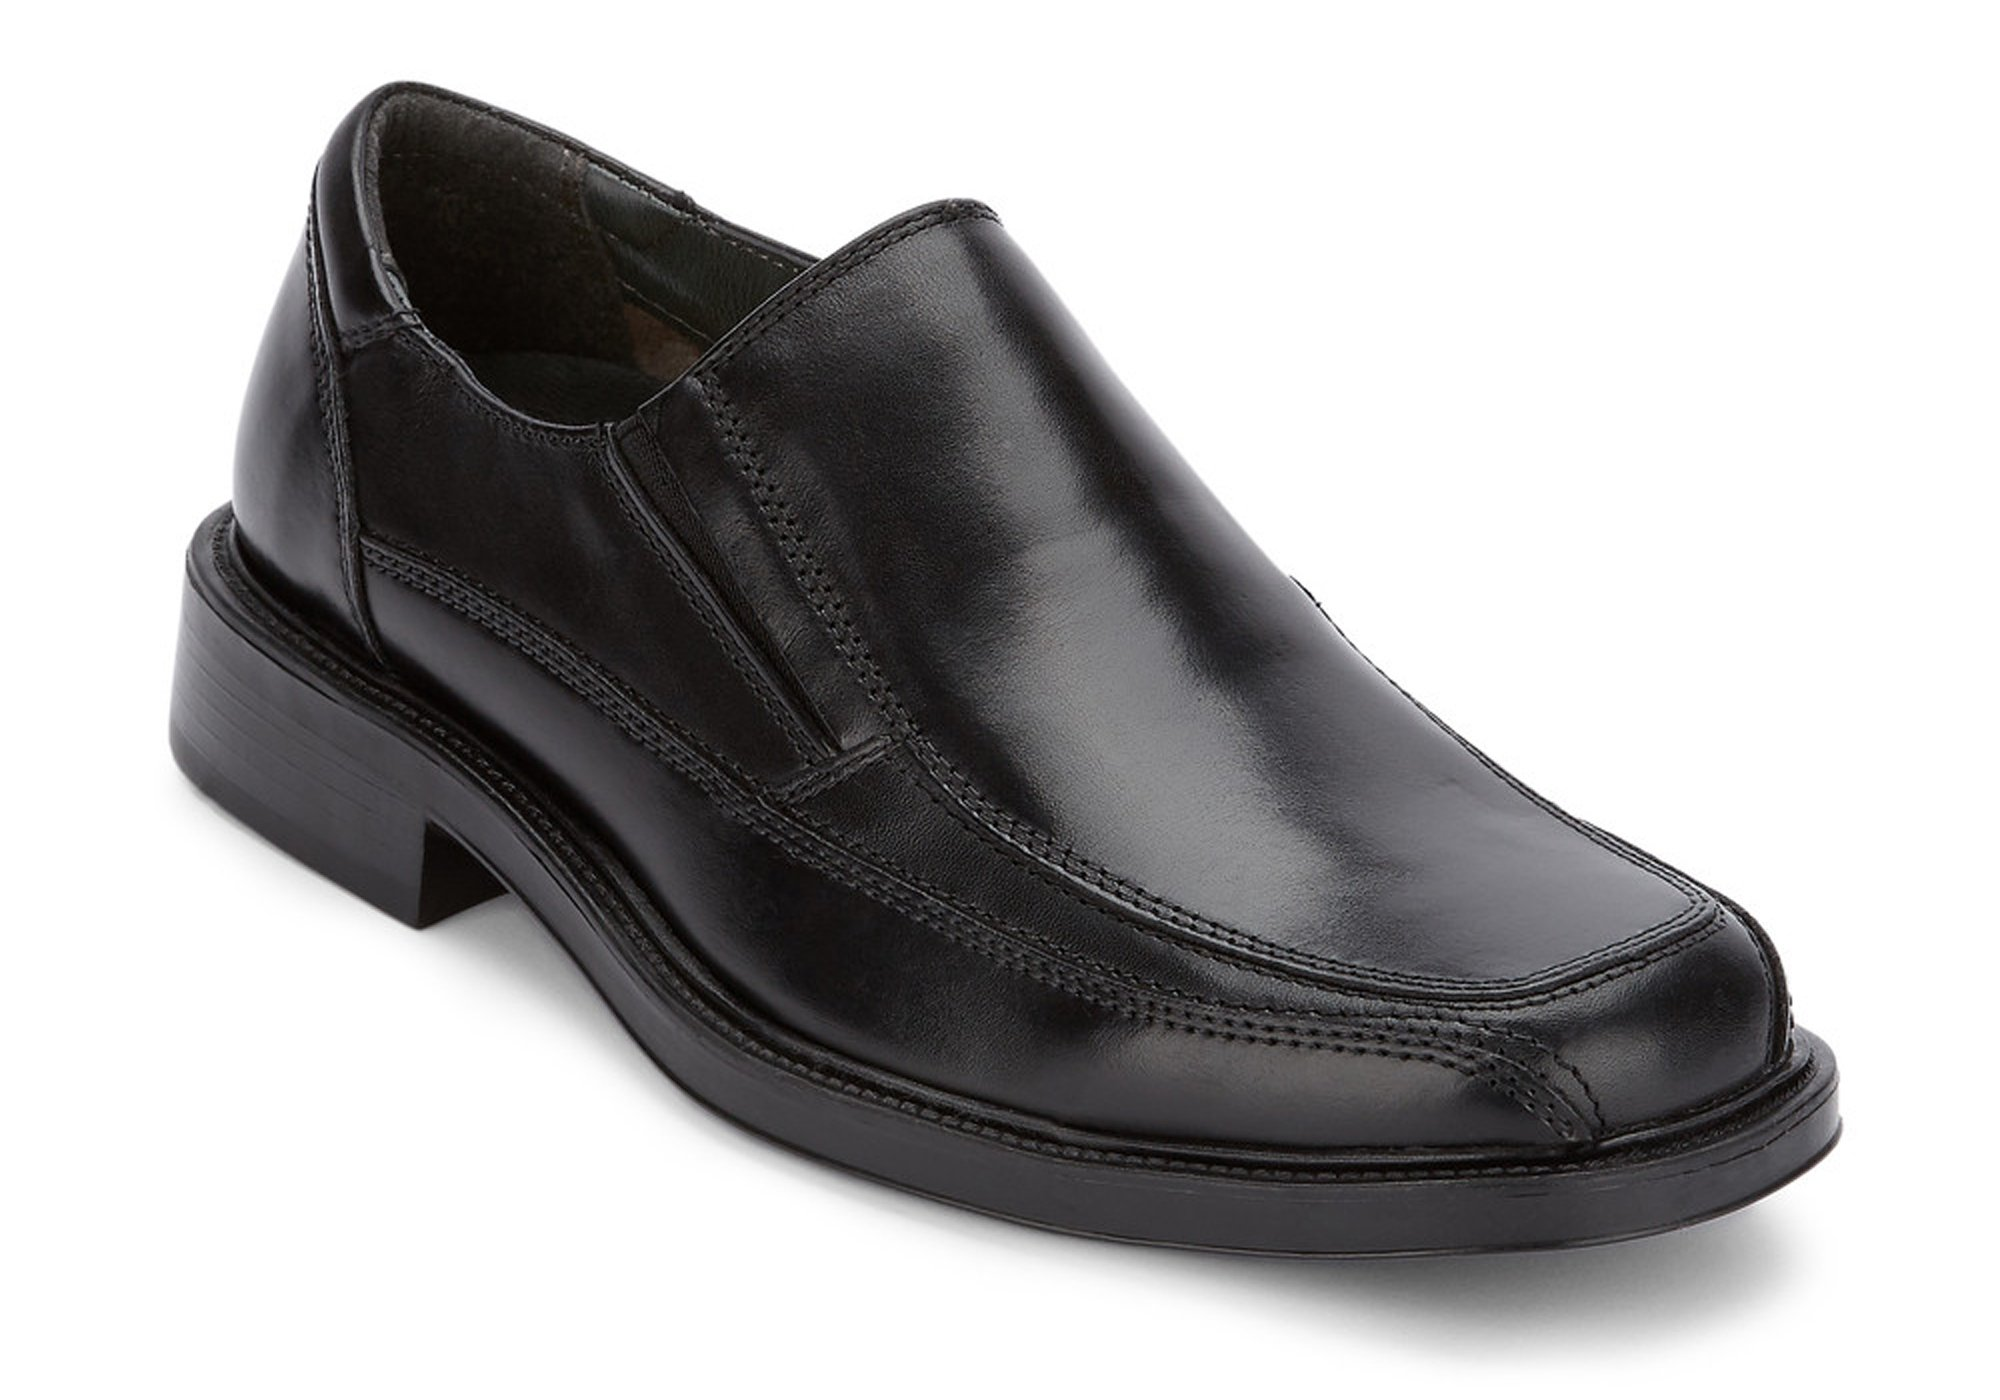 Dockers Men's Proposal Leather Slip-on Loafer Shoe,Black,13 M US